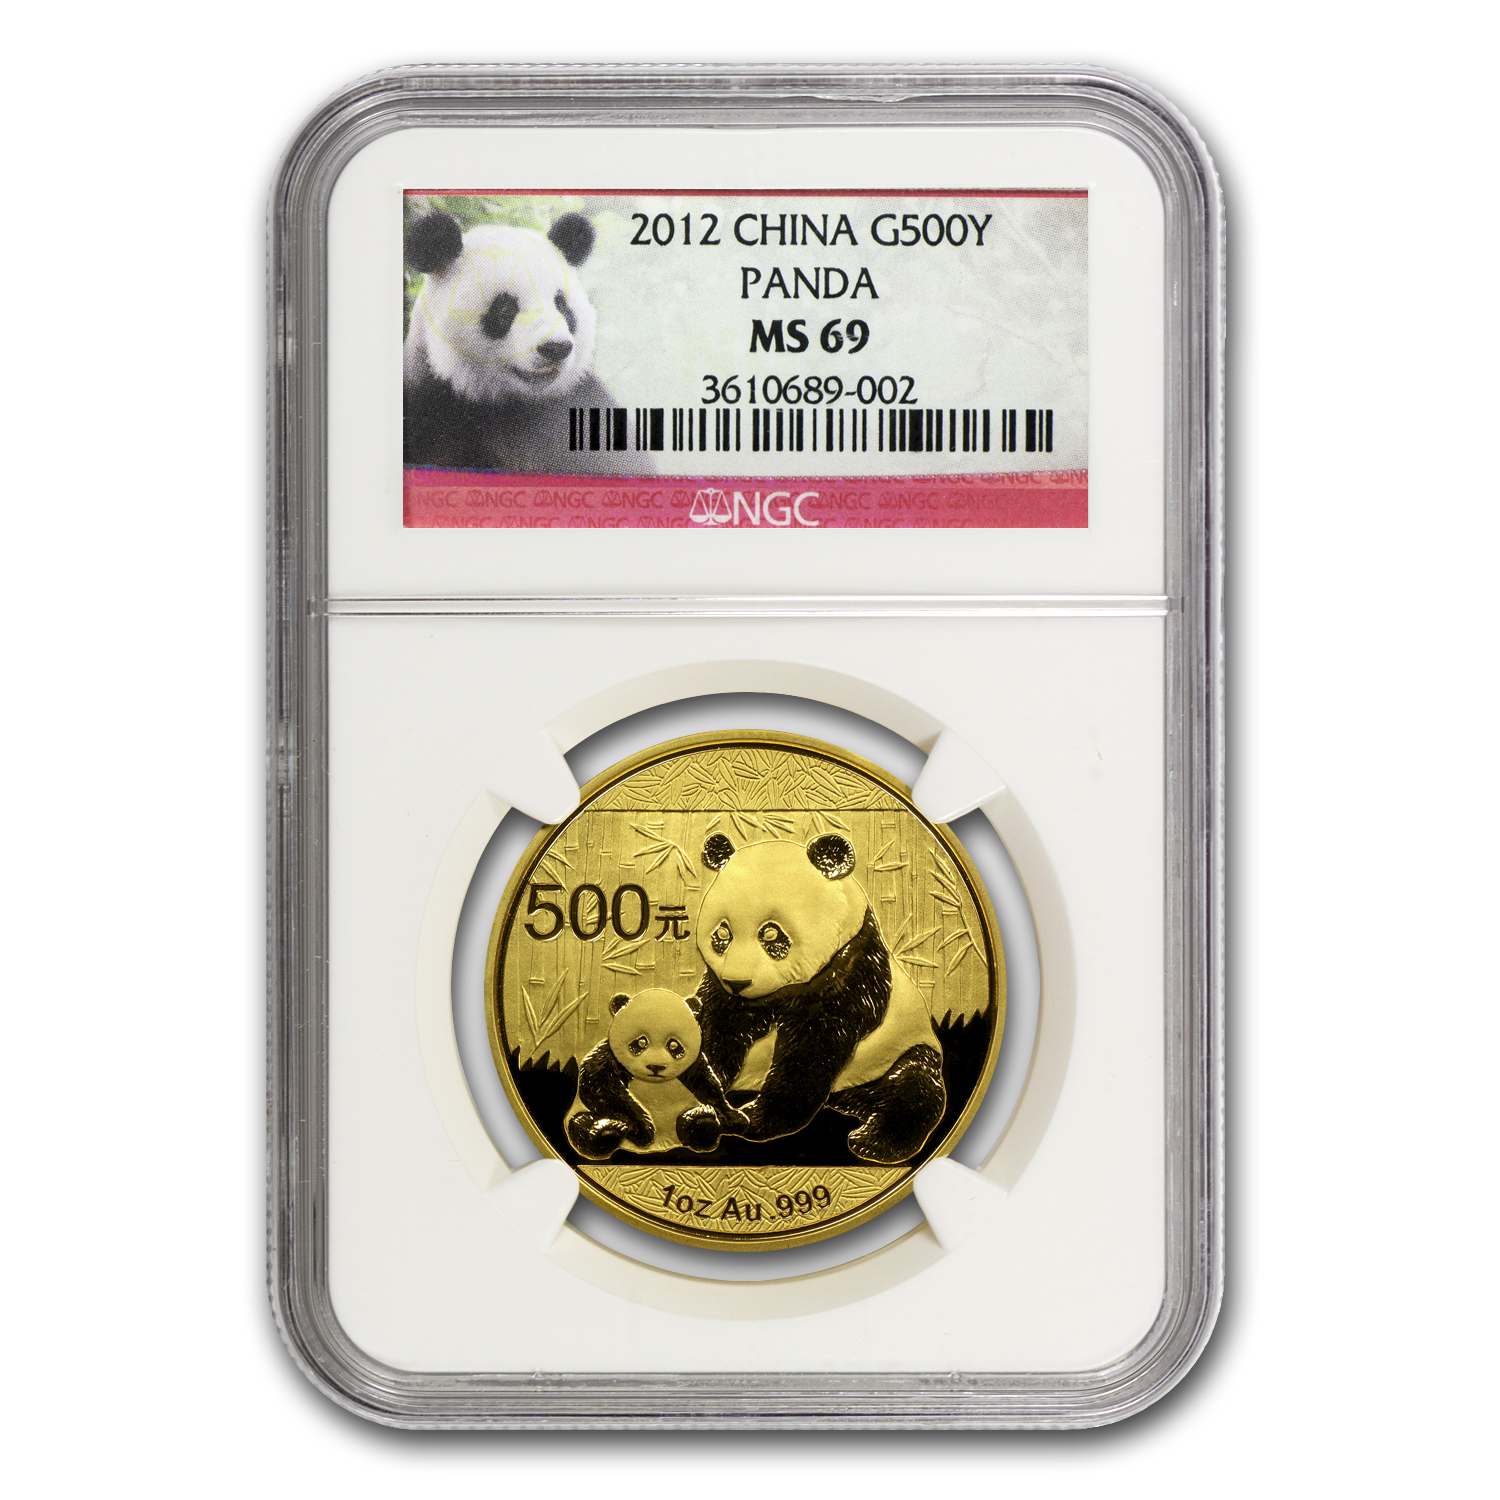 2012 1 oz Gold Chinese Panda MS-69 NGC